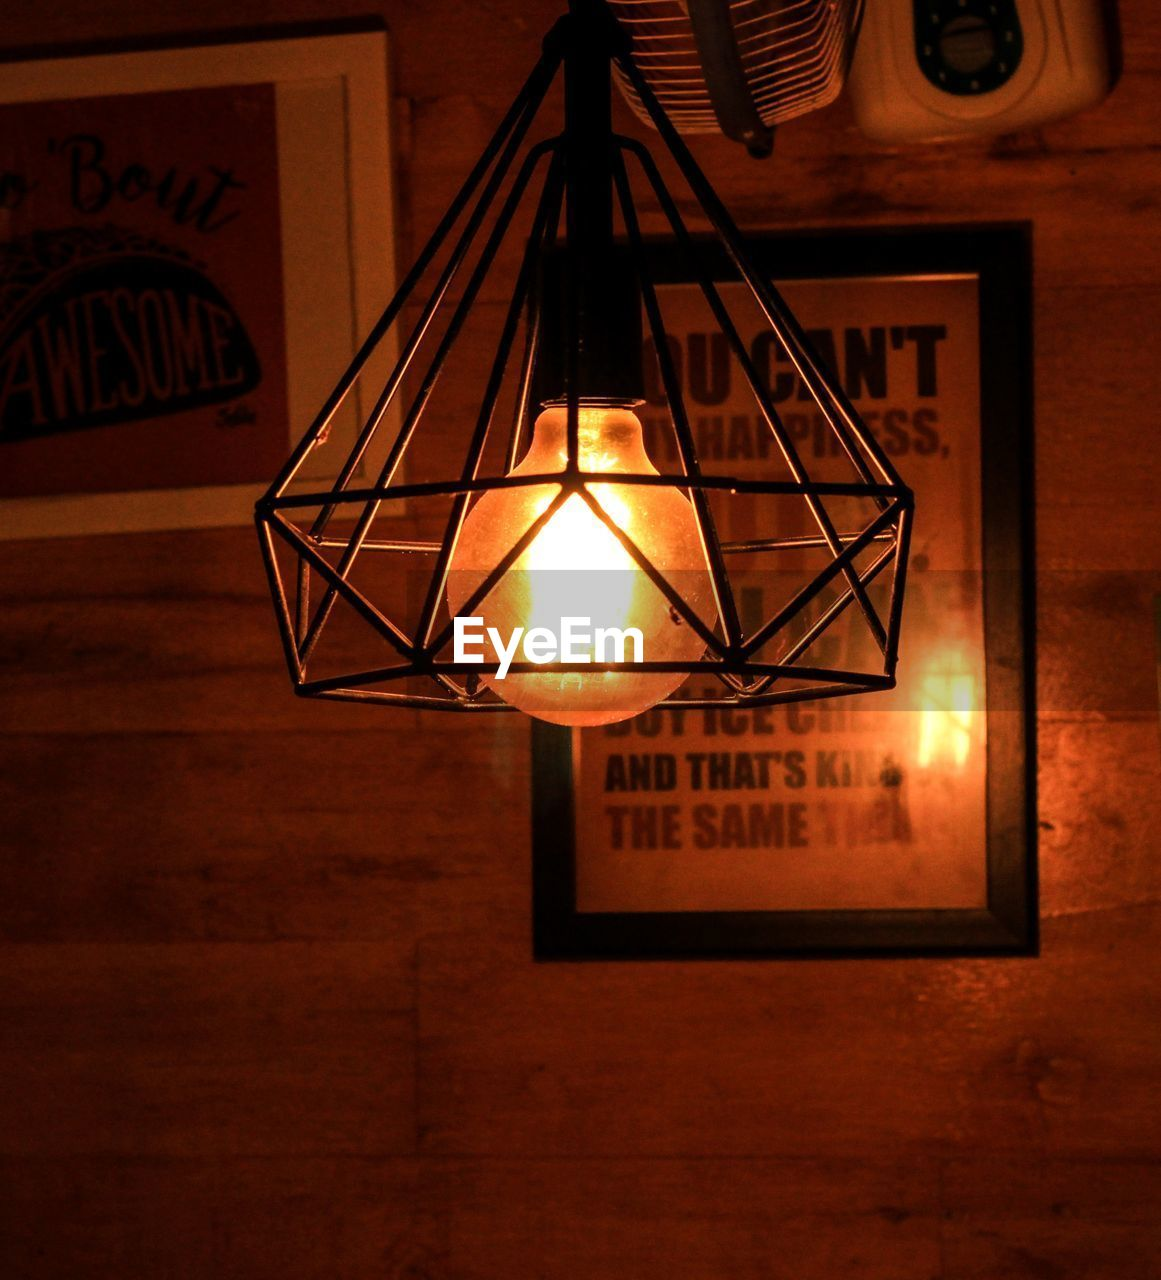 illuminated, hanging, lighting equipment, indoors, no people, electricity, light, electric lamp, glowing, wall - building feature, electric light, pendant light, architecture, light - natural phenomenon, home interior, close-up, frame, low angle view, technology, ceiling, stage, electrical equipment